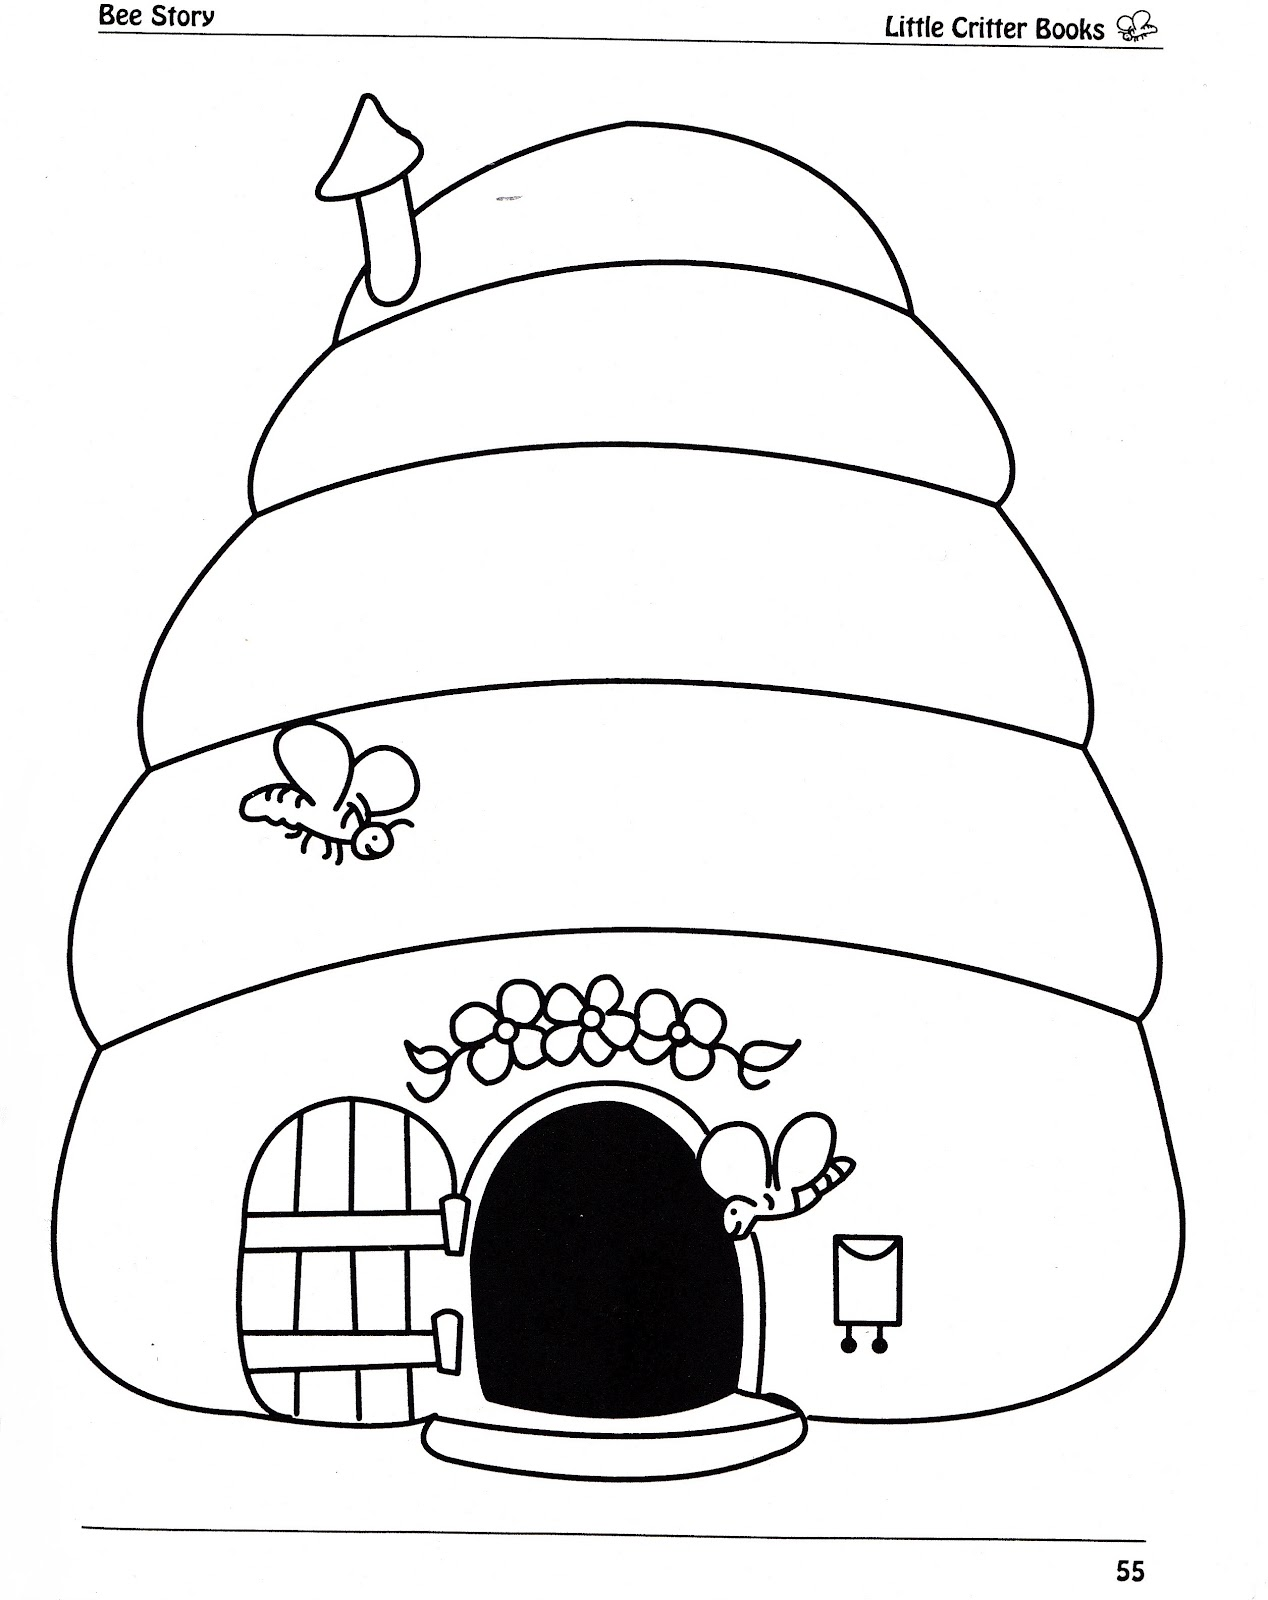 Bumble Bee Coloring Pages | Coloring Pages Gallery